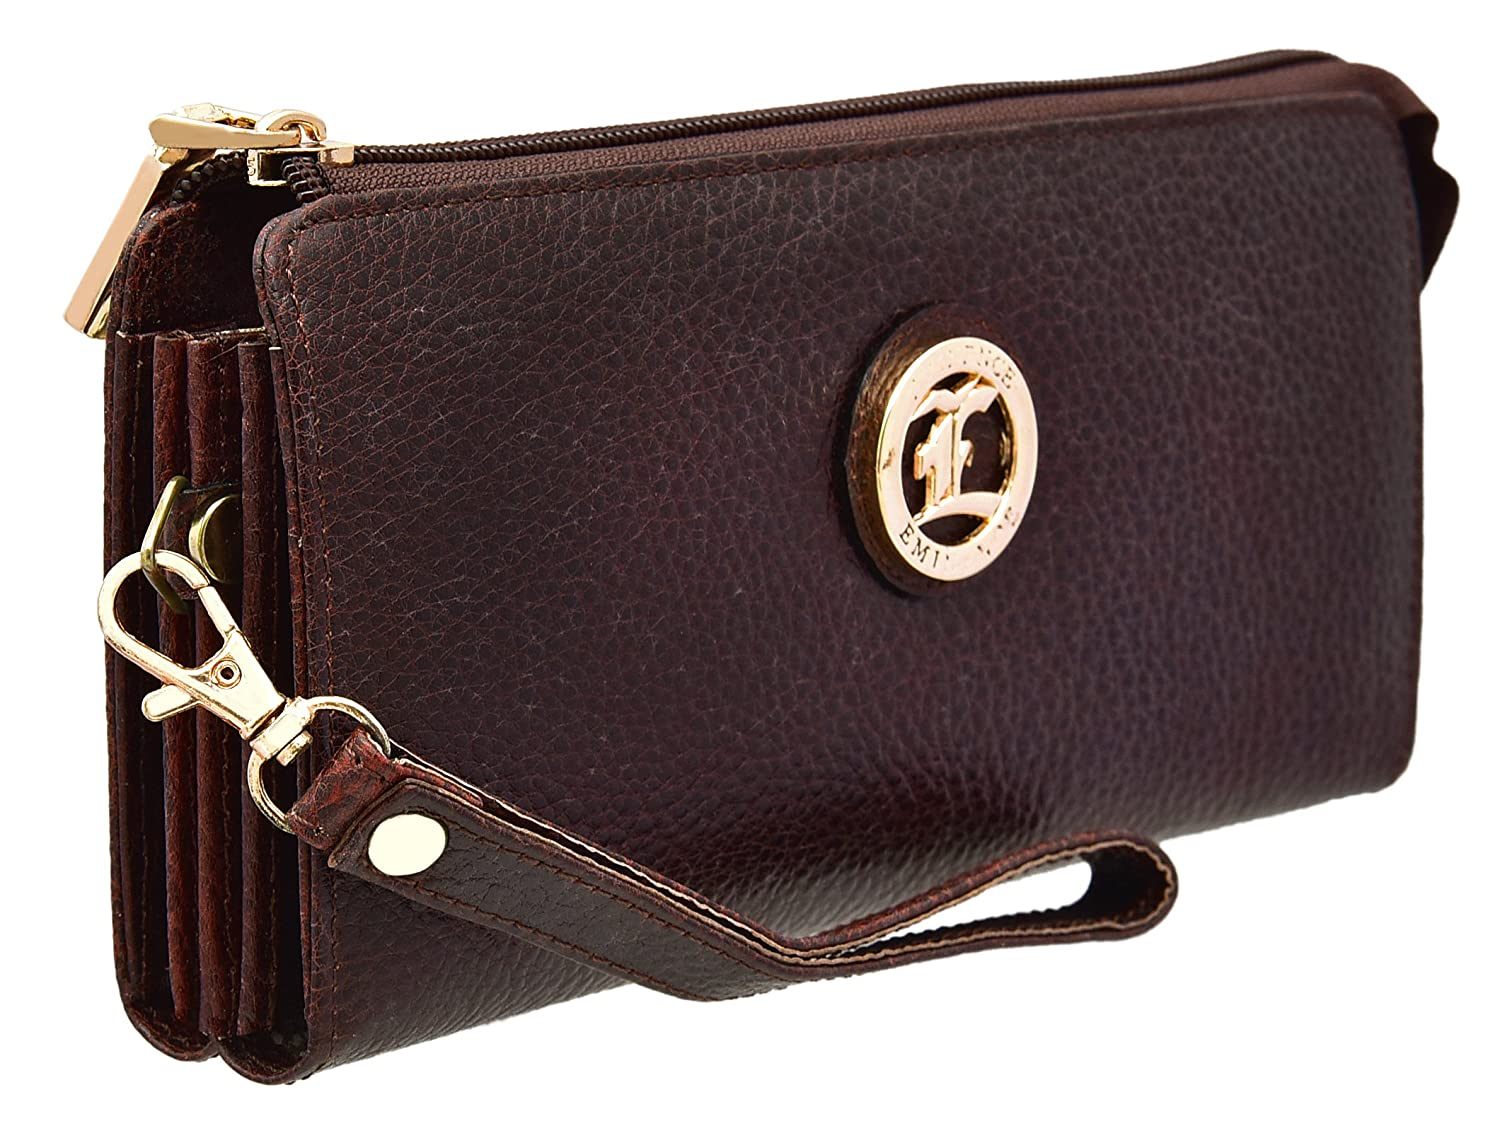 JFL - 100% Pure Genuine Real Vintage Leather Handmade Dark Brown wallet/ Clutch for Women and Girls